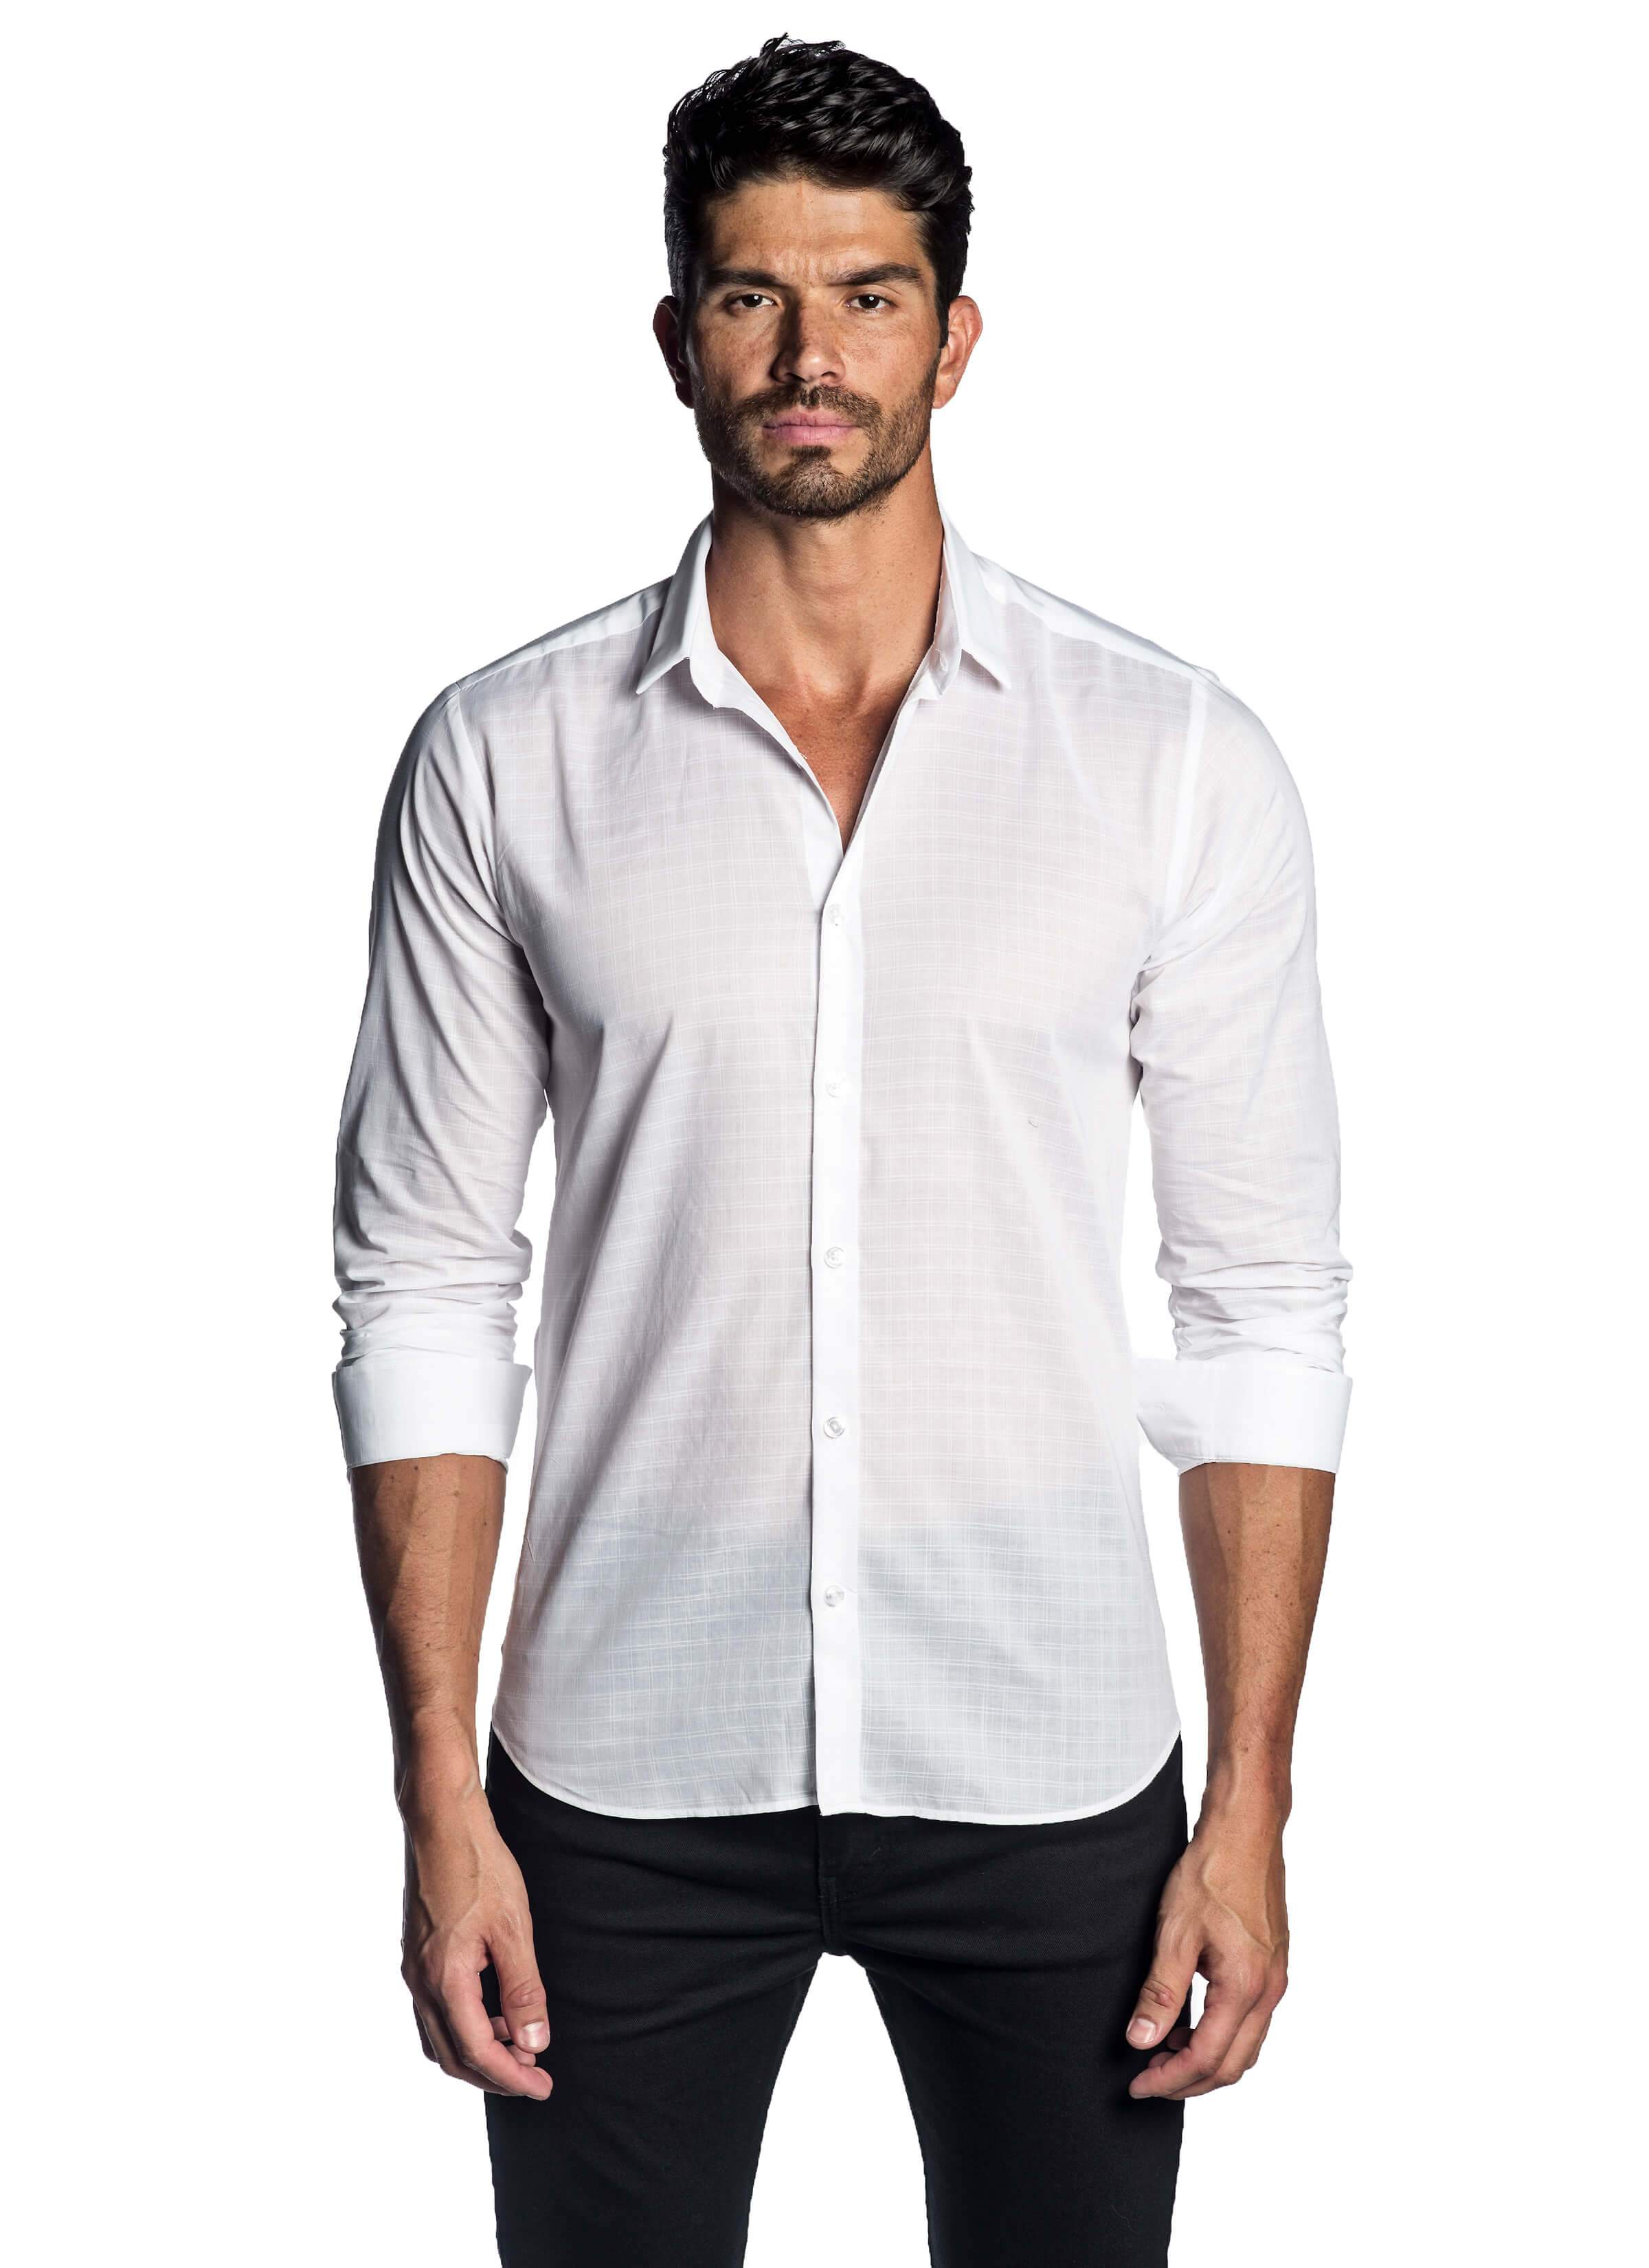 White Plaid Shirt for Men - front AH-T-2010 - Jared Lang